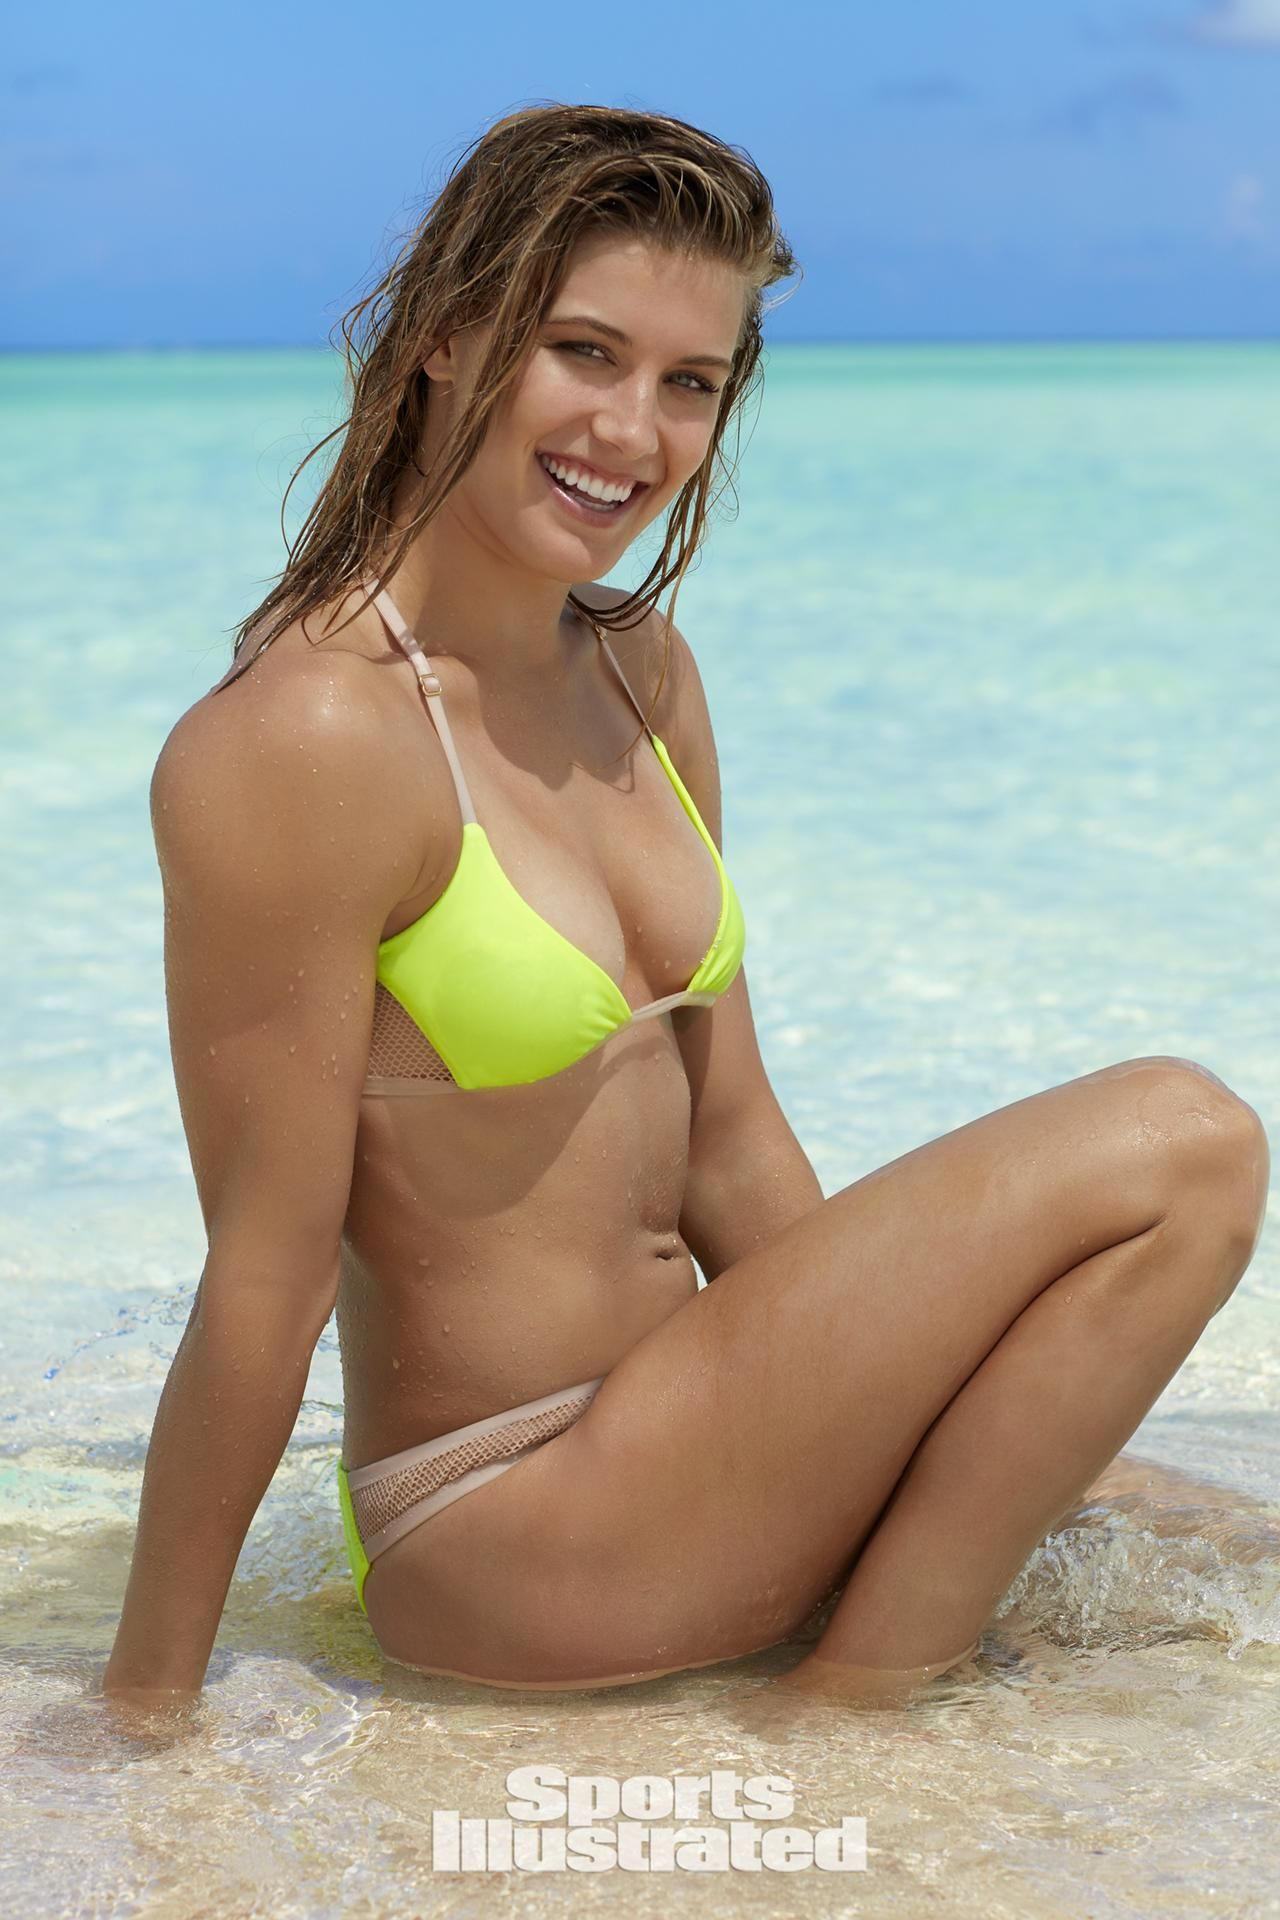 Cover sports illustrated swimsuit